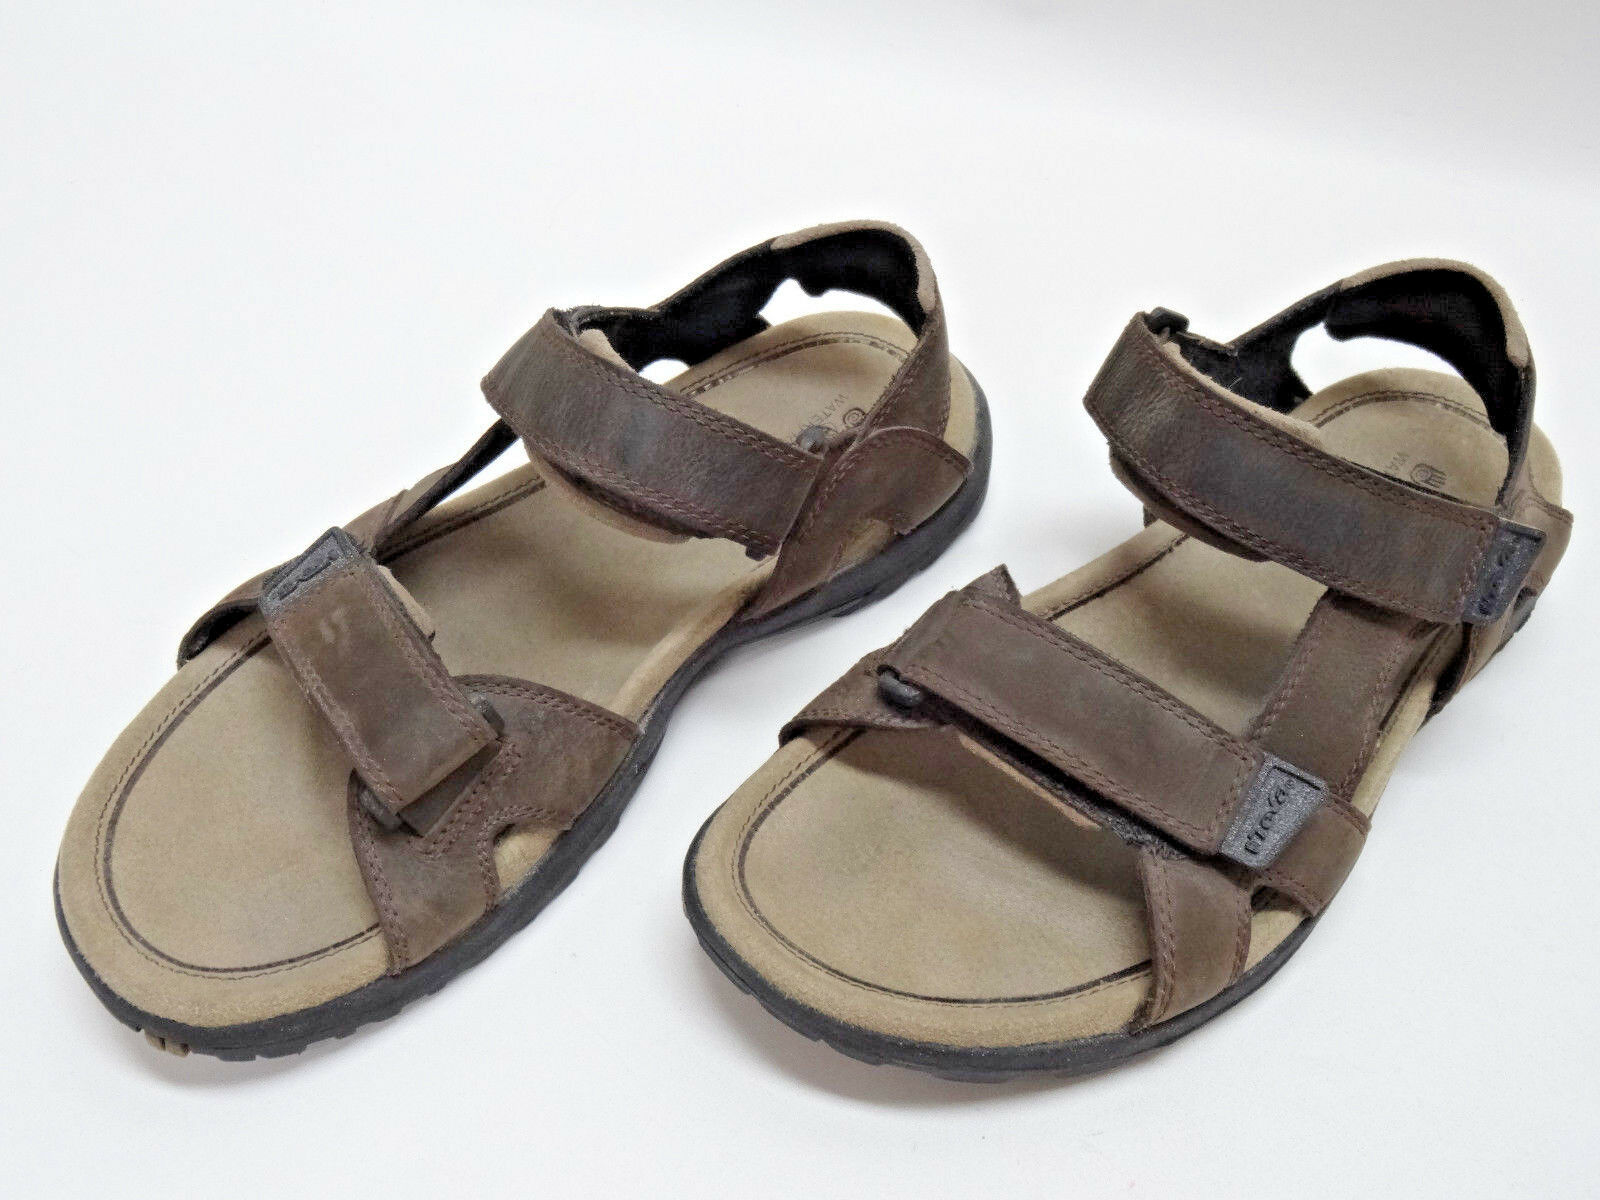 Sandali e scarpe per il mare da uomo TEVA uomoS BROWN LEATHER SANDALS ~HIKING~WATER~OUTDOORS SIZE 11US/10UK/44.5EU